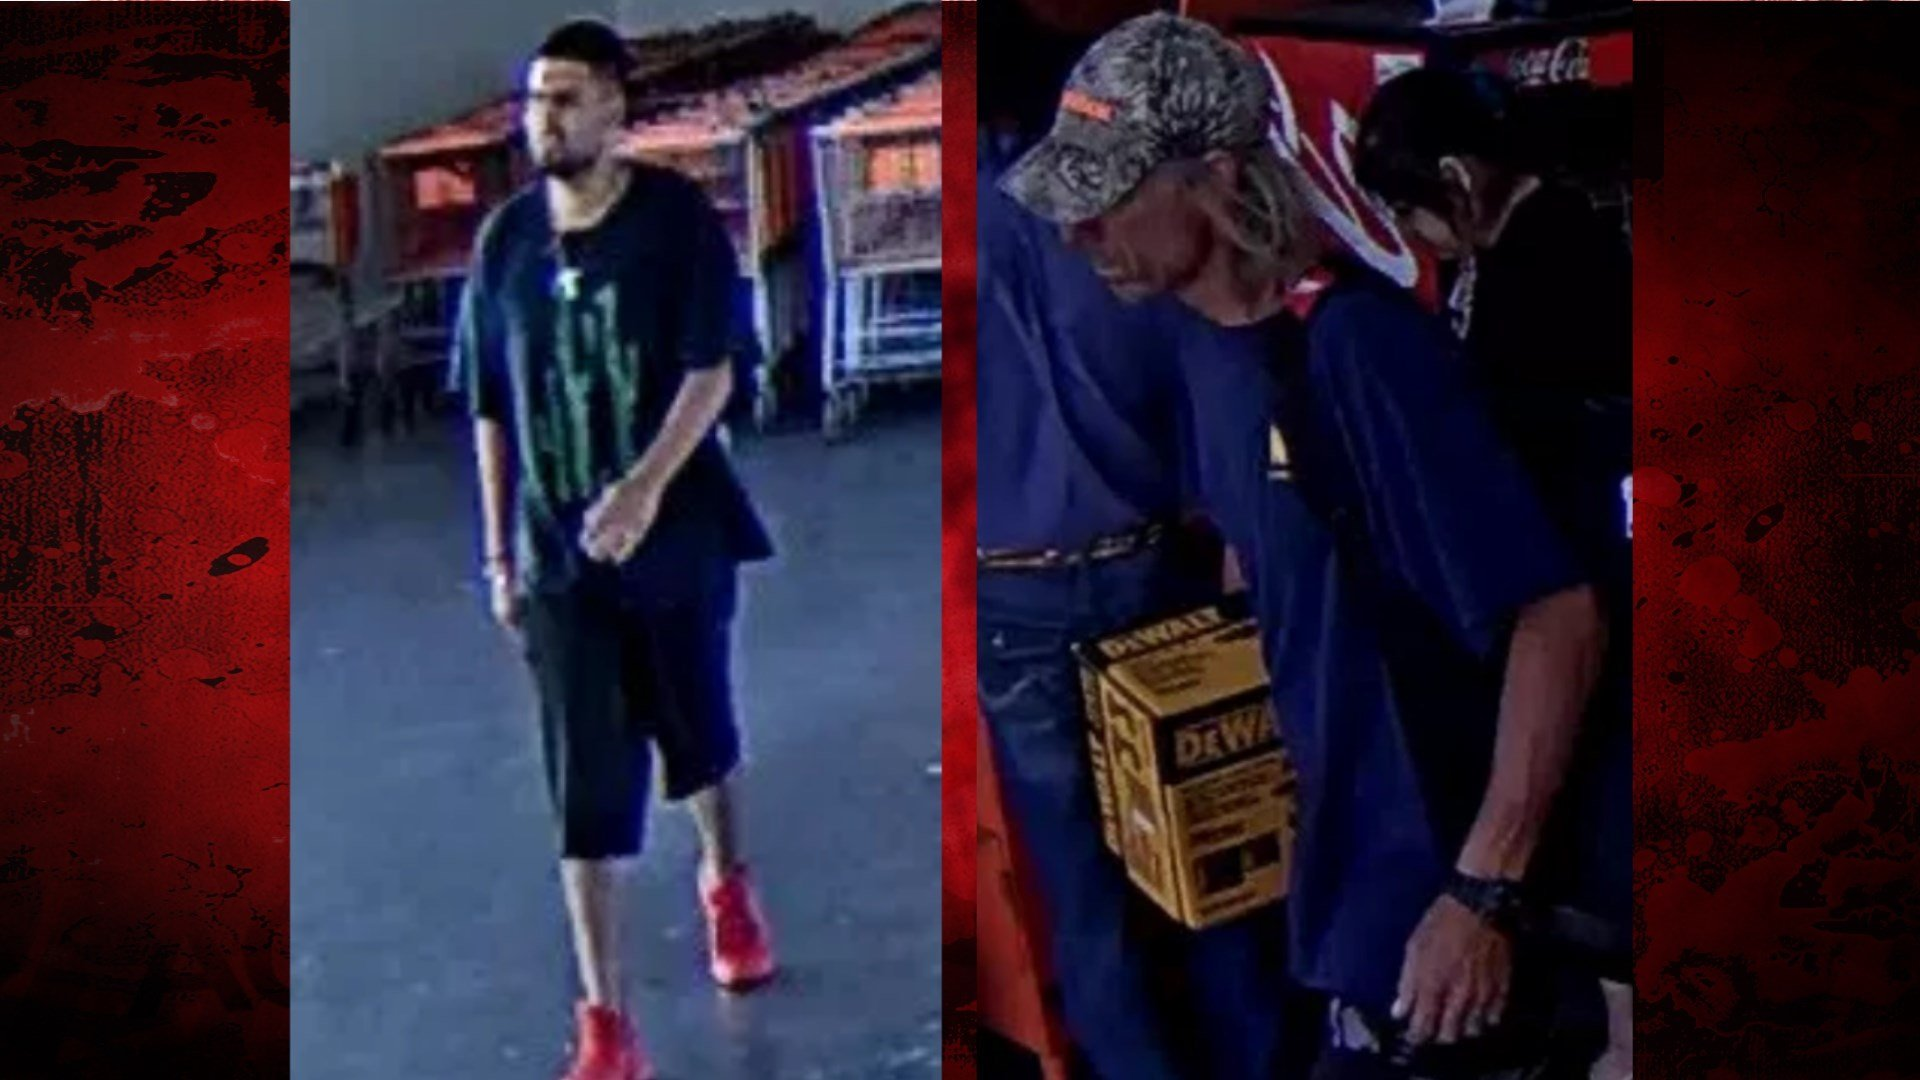 Alleged thieves wanted in Home Depot thefts KZTV